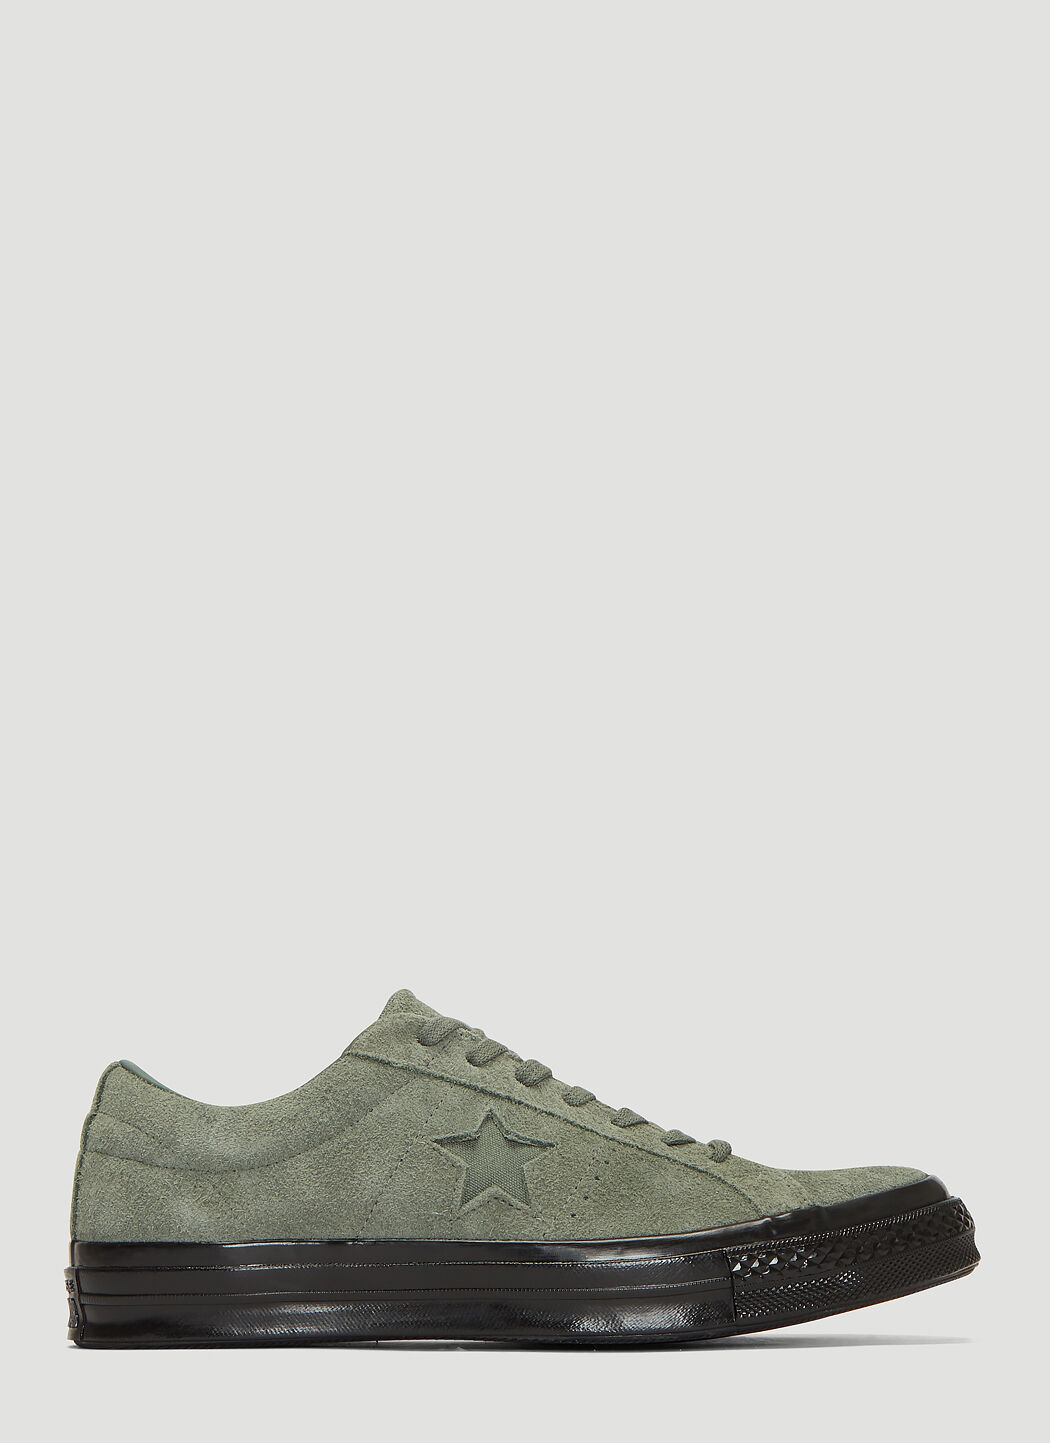 Converse One Star Suede Sneakers in Green | LN CC